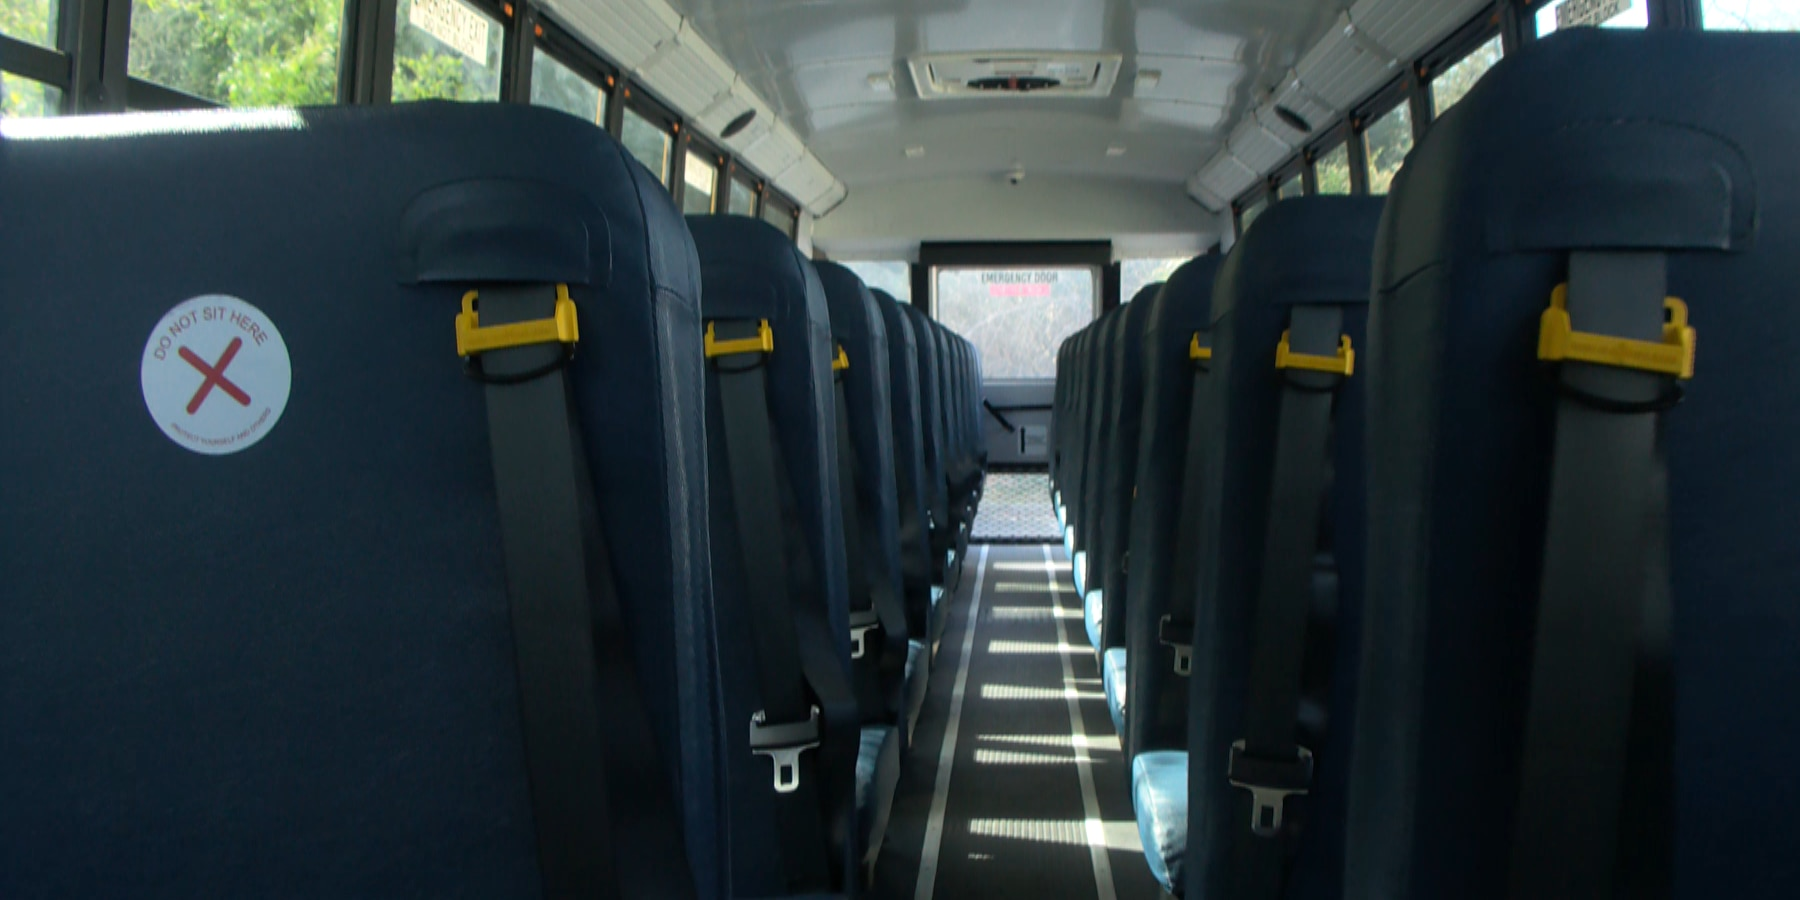 'I'm glad to see the kids': Henrico school buses return with COVID-19 safety measures